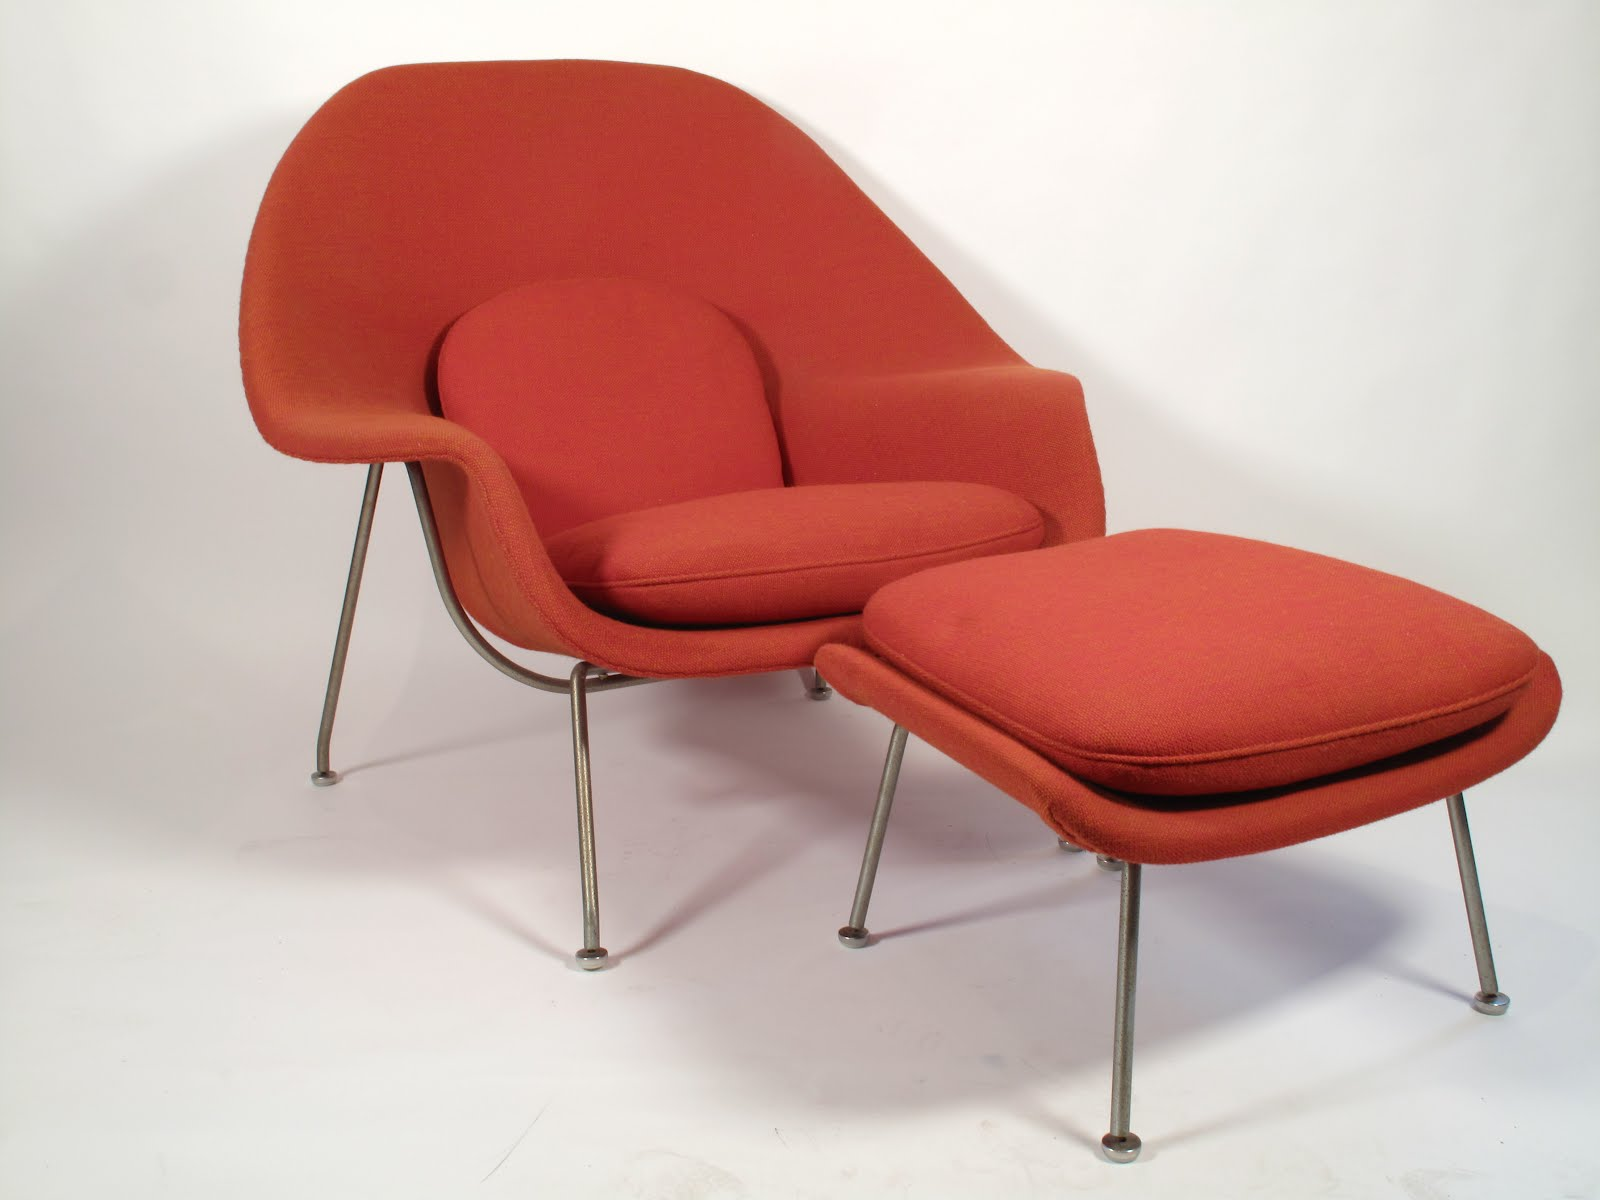 The Birth of the Womb Chair